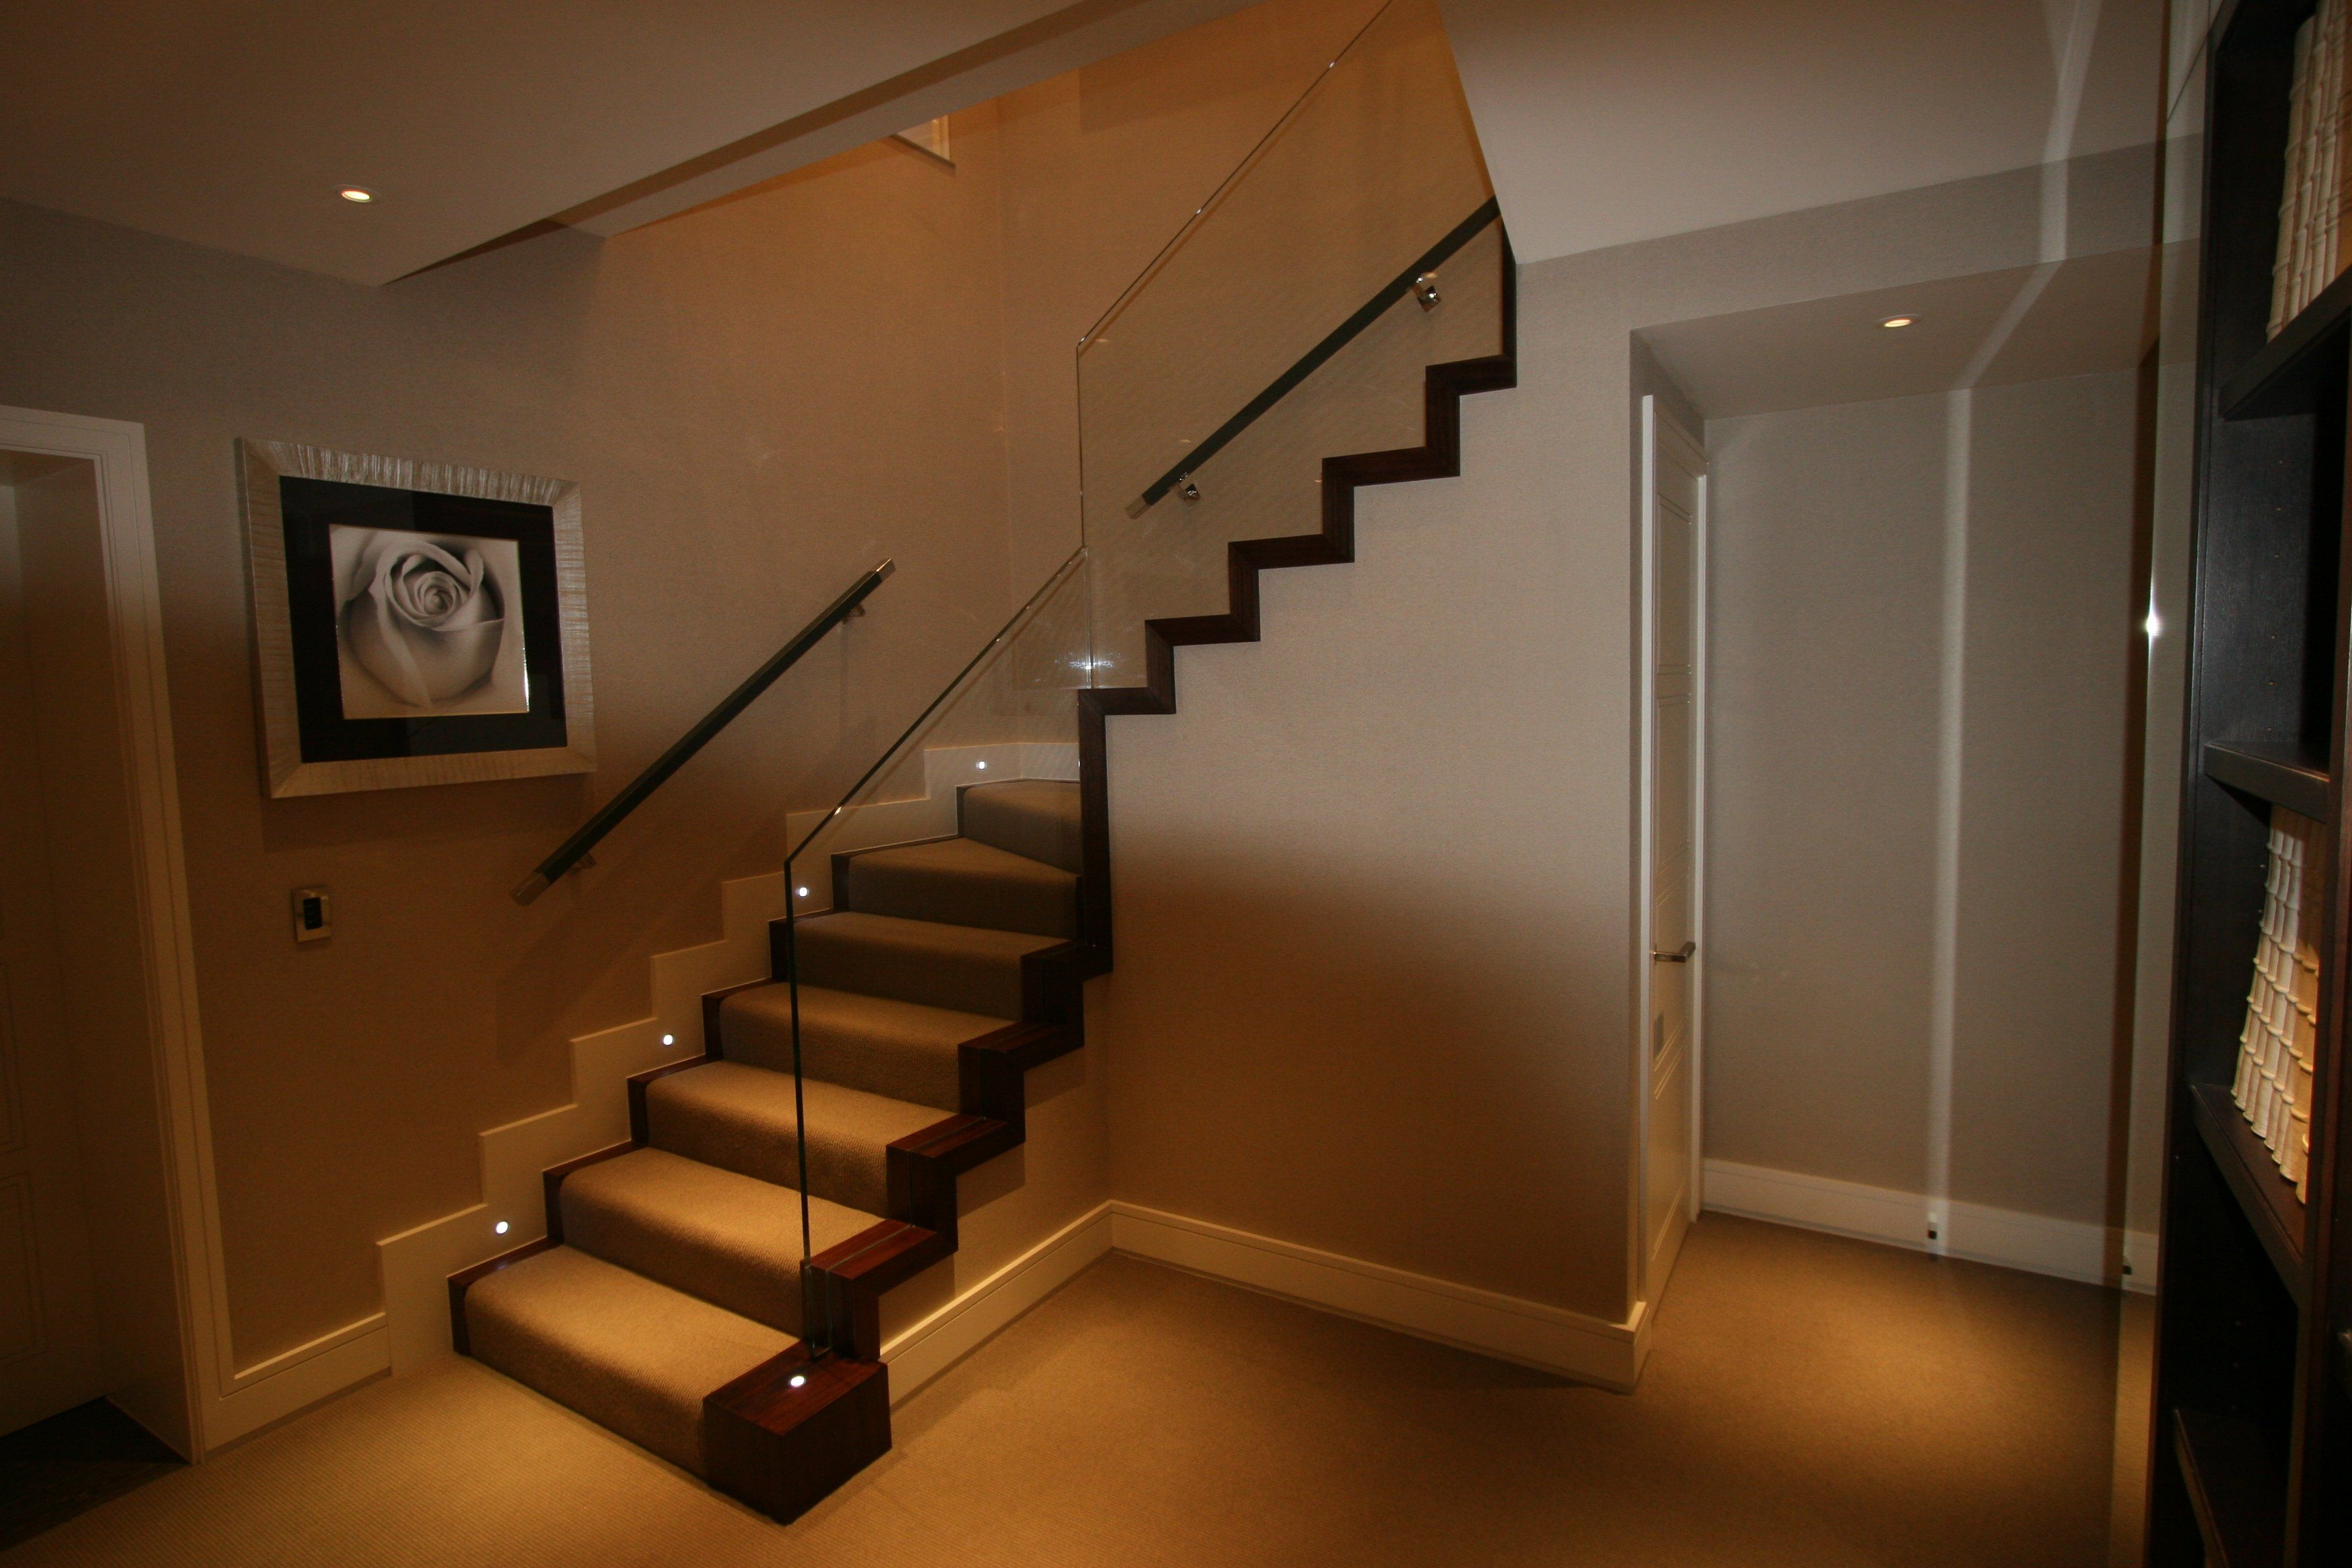 Led staircase lighting staircase lighting pinterest - Interior stair lighting ideas ...